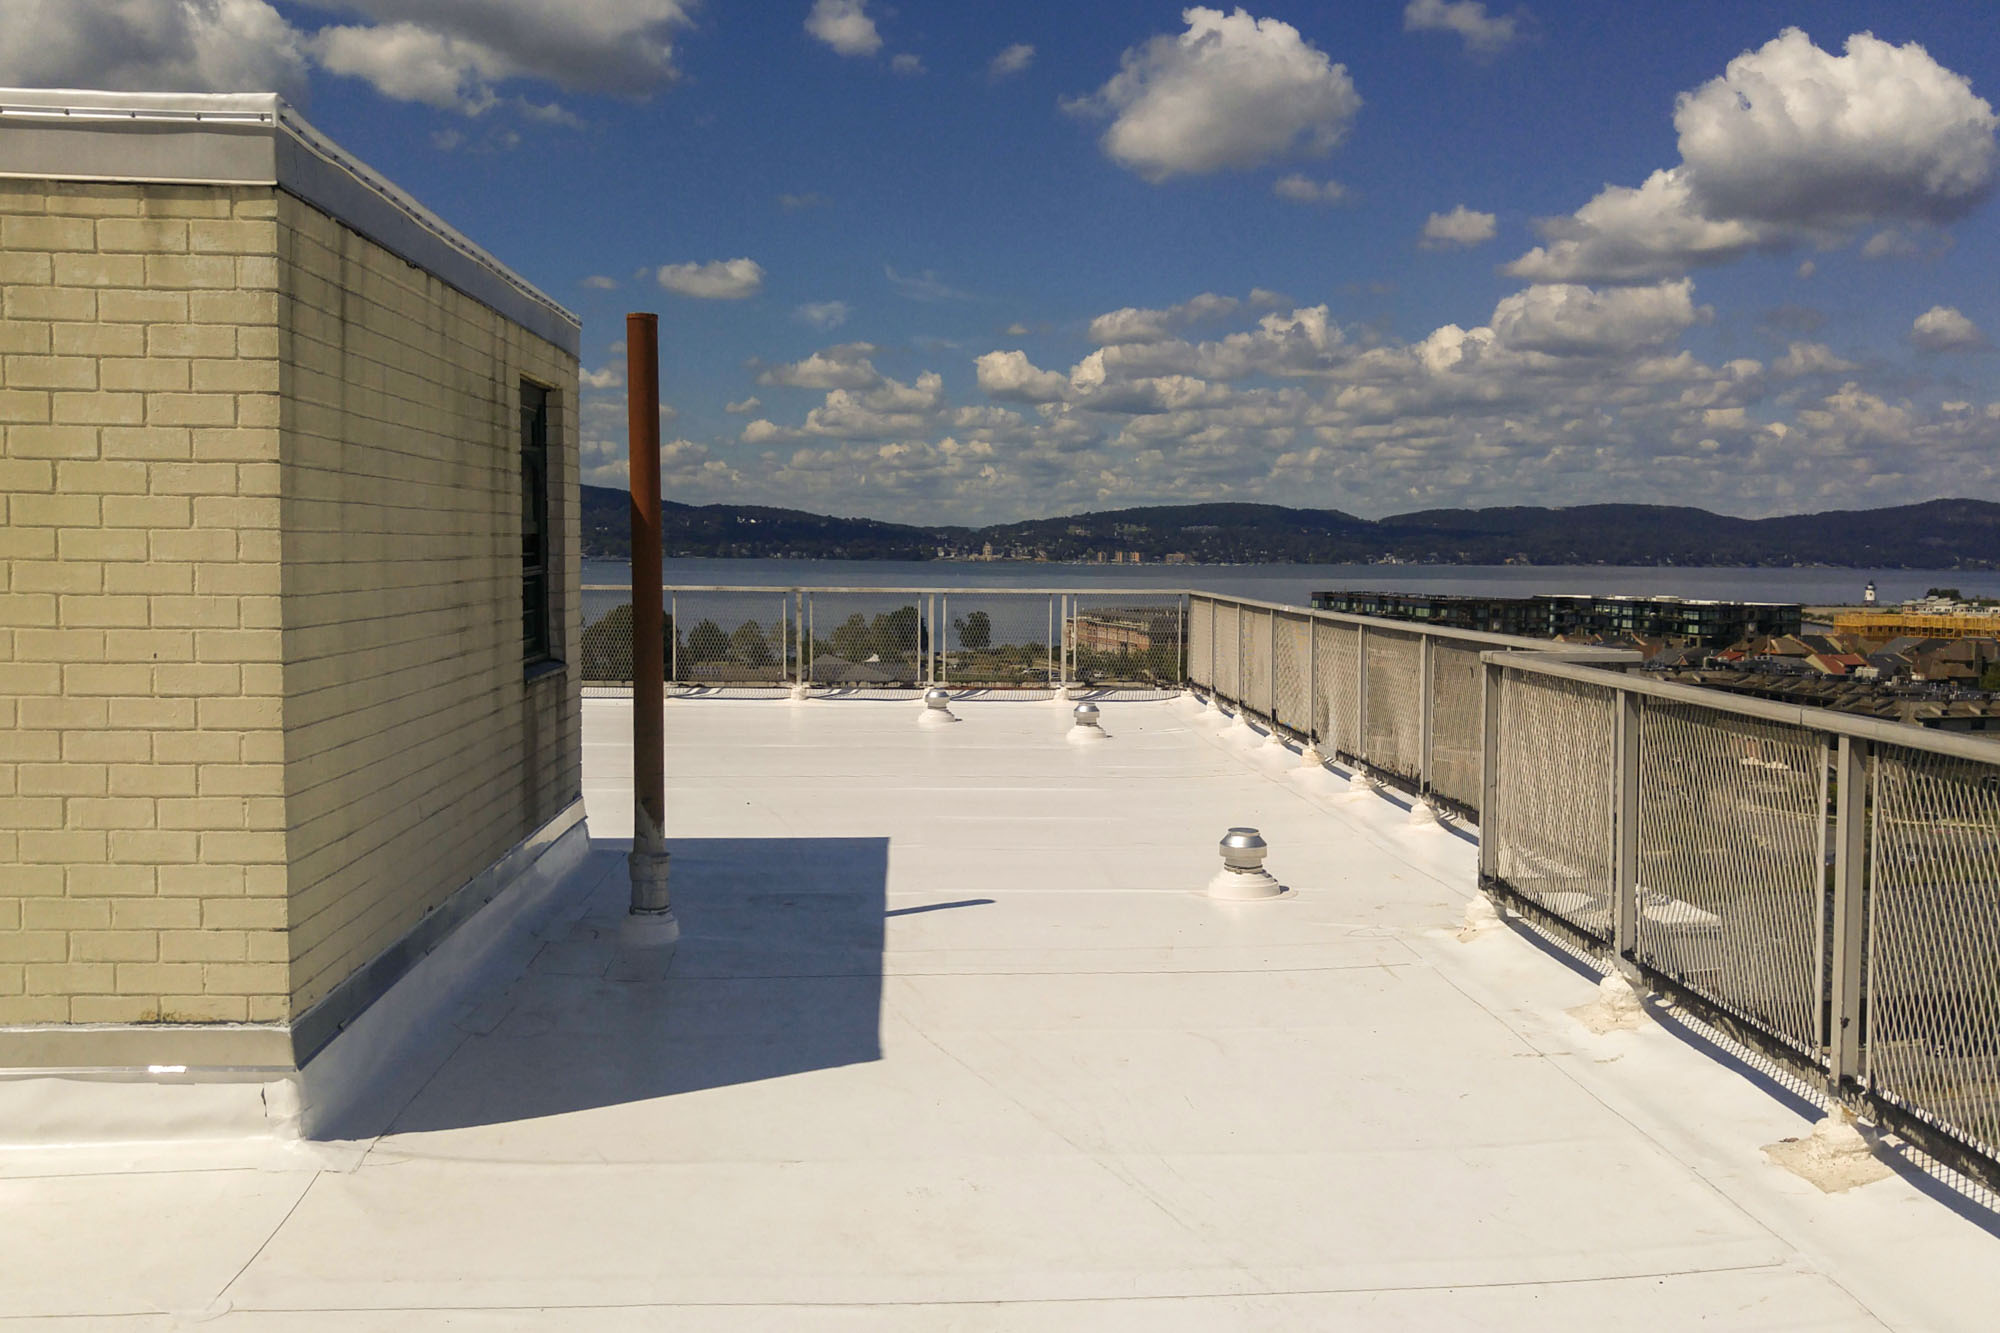 Roof_image-8